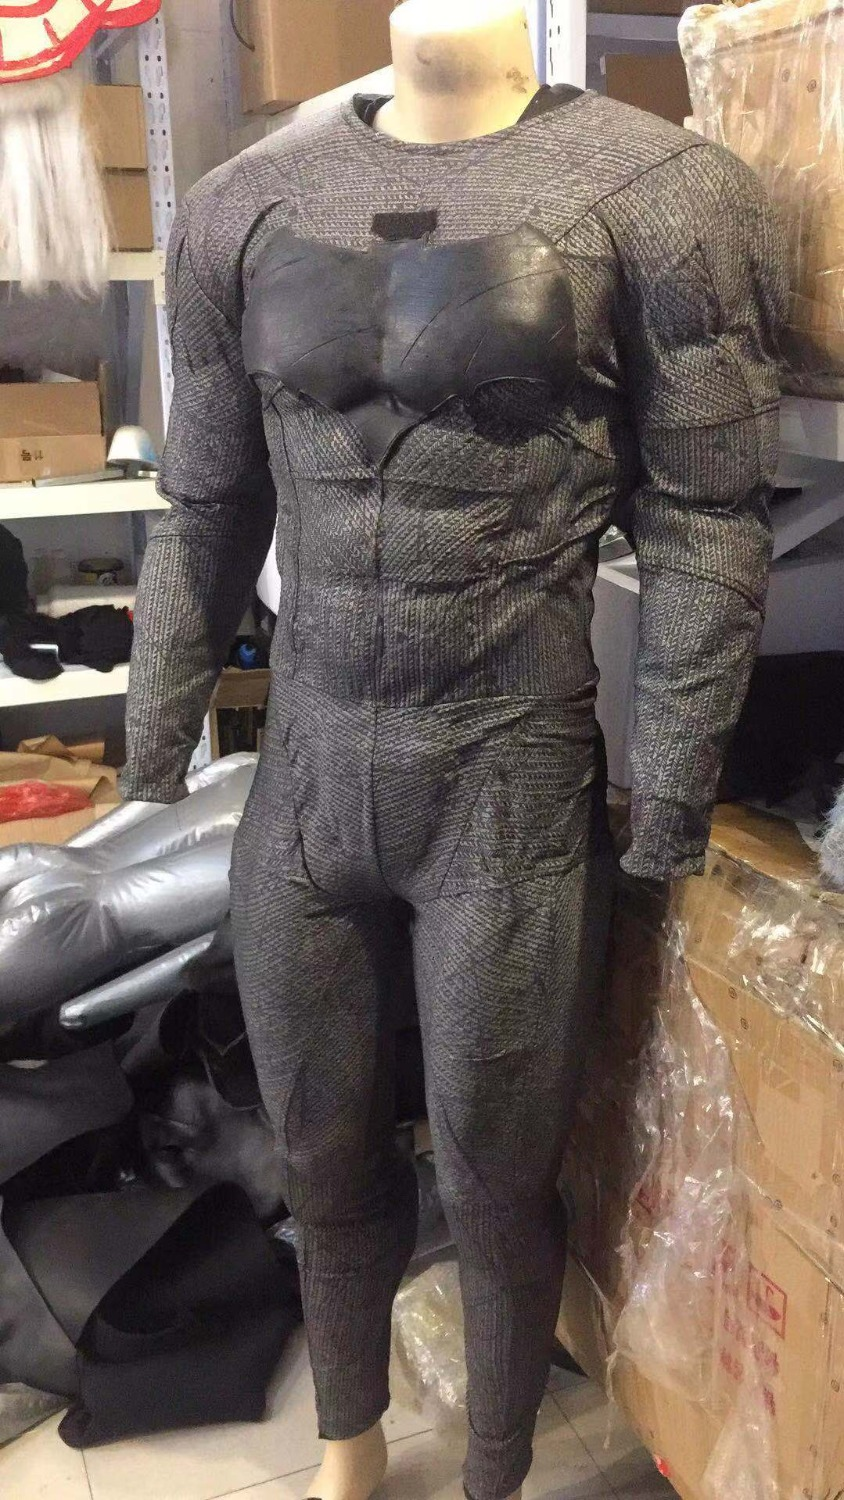 Batman cosplay ONLY COST for GLUING  batman muscle suit and body suit together